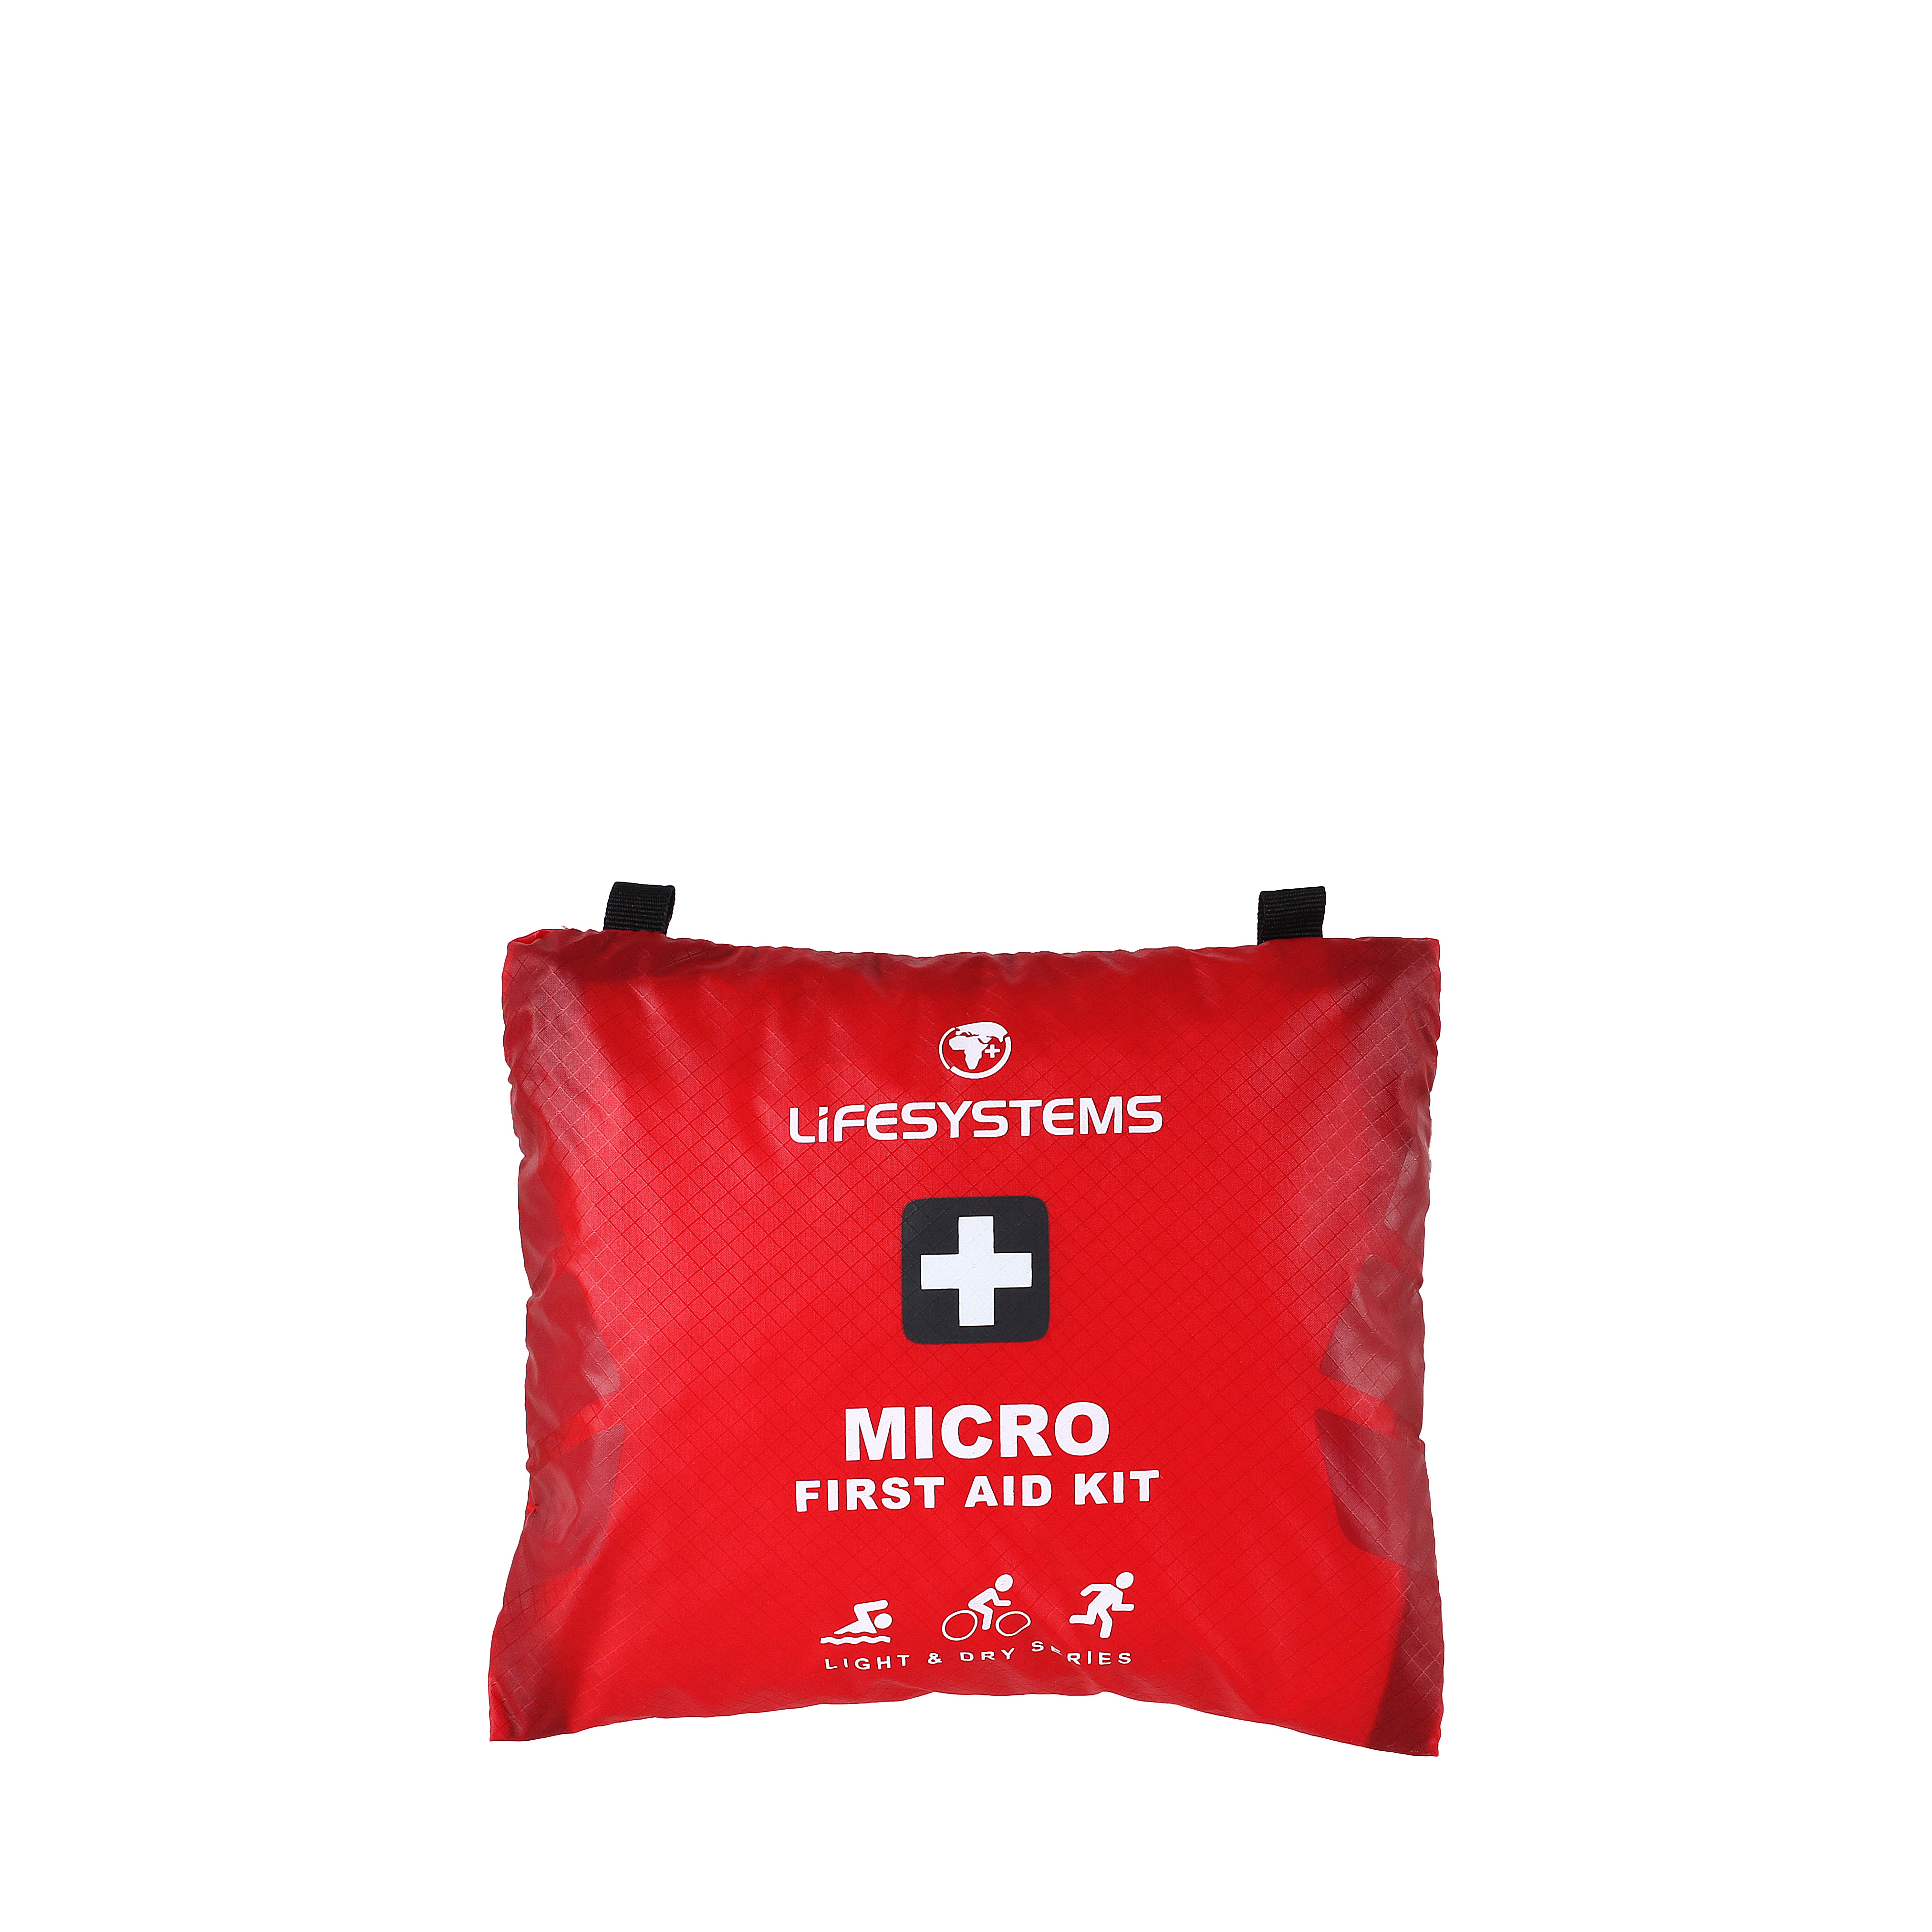 Lee Light & Dry Micro First Aid Kit